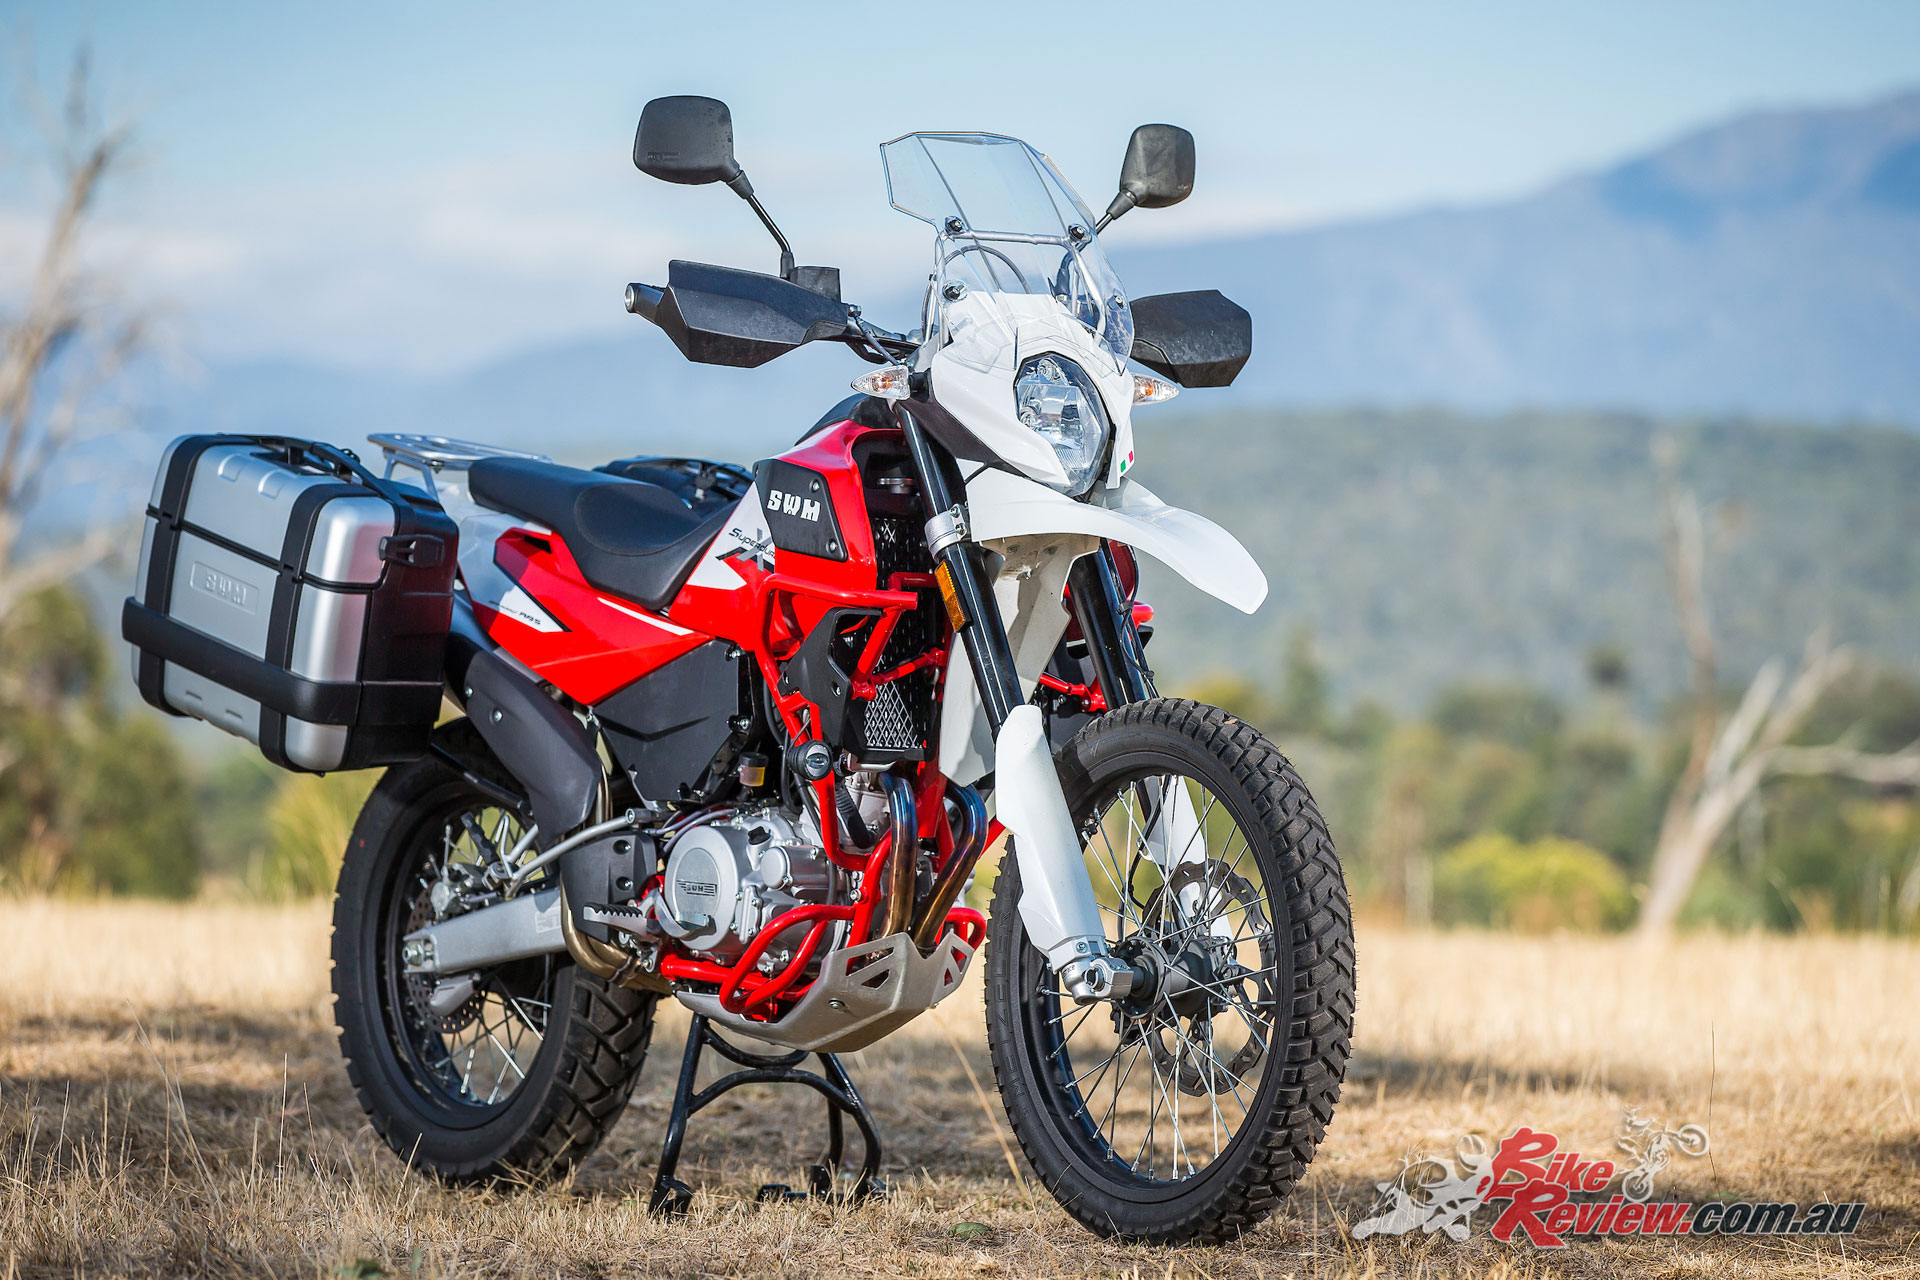 The SWM Superdual X offers a great value adventure option, with heaps of standard inclusions and as an introductory special the 'GT Kit' included free with the Givi panniers